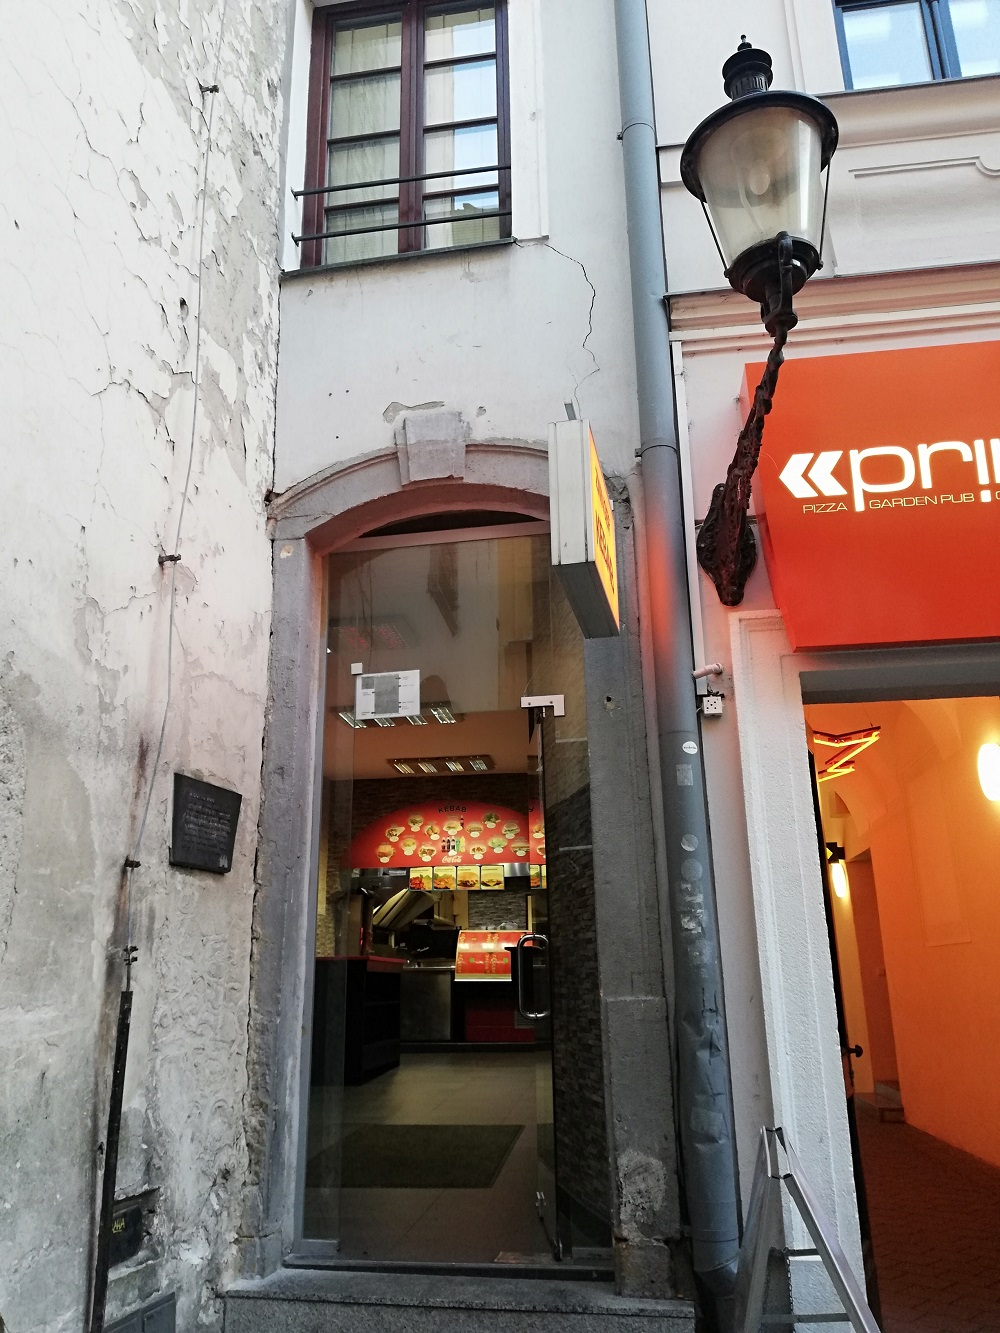 One-Day-In-Bratislava-Narrowest-House-In-Europe.jpg